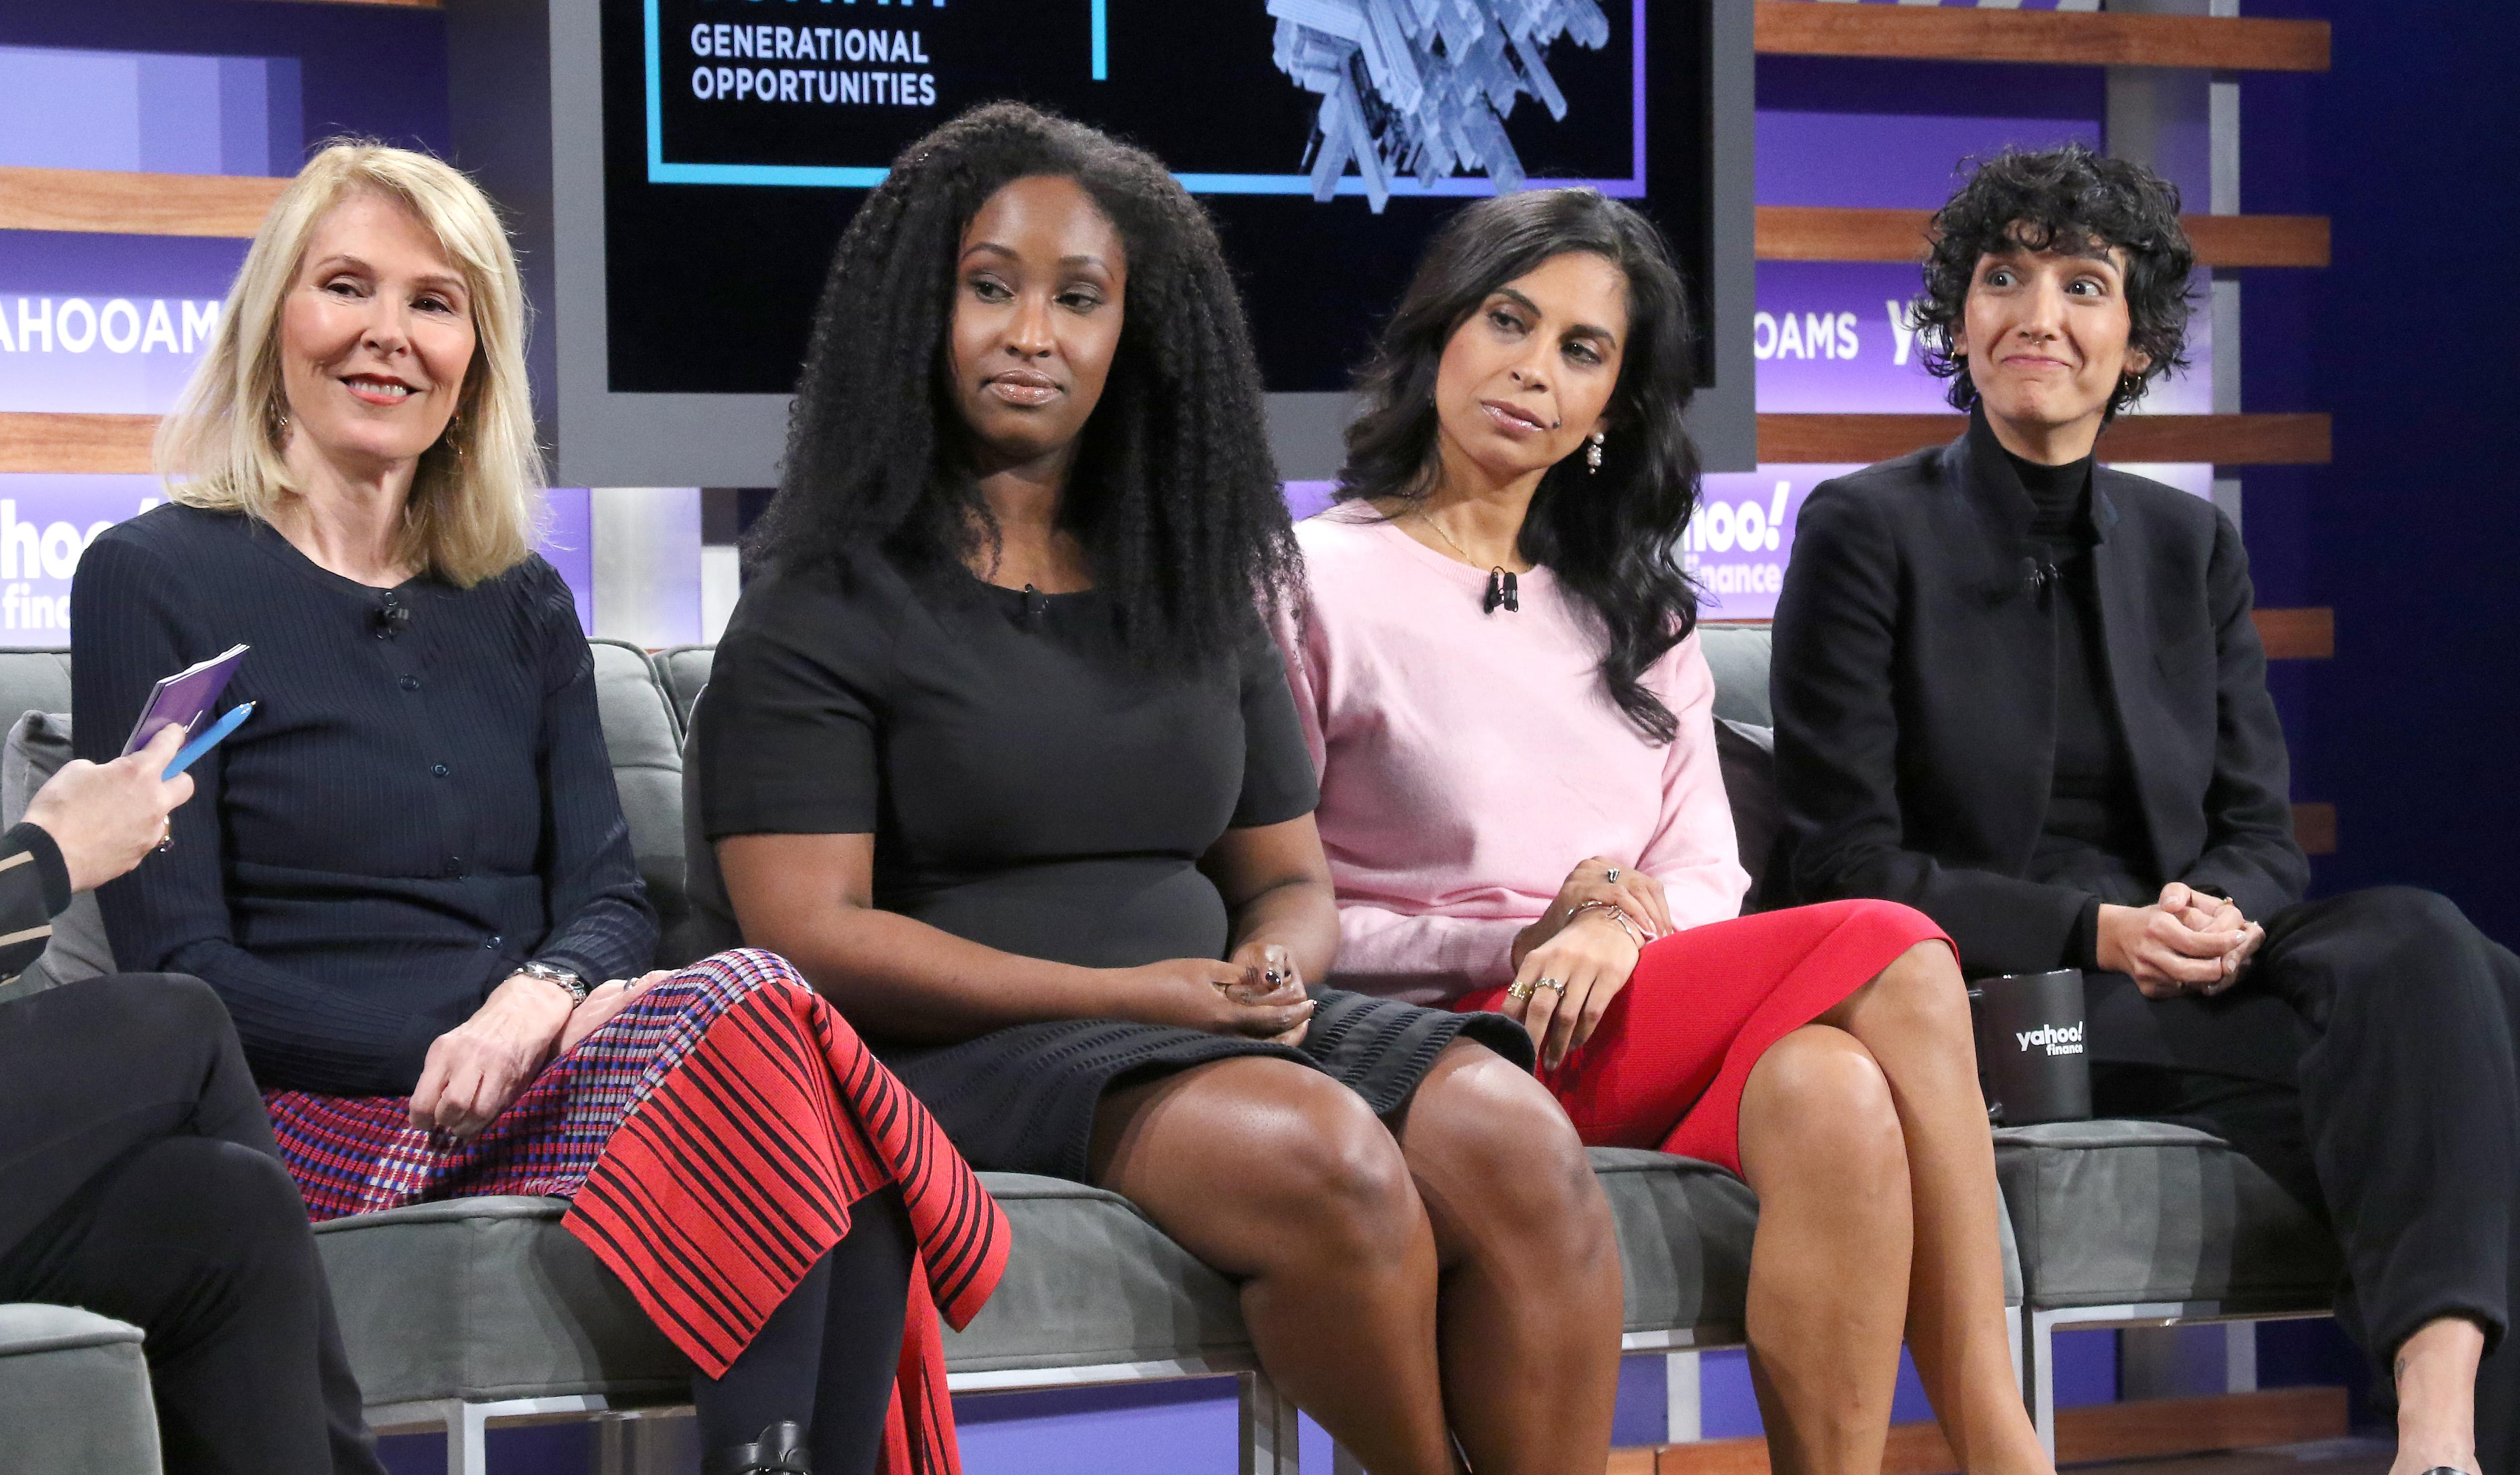 A key trait that female founders and VCs have